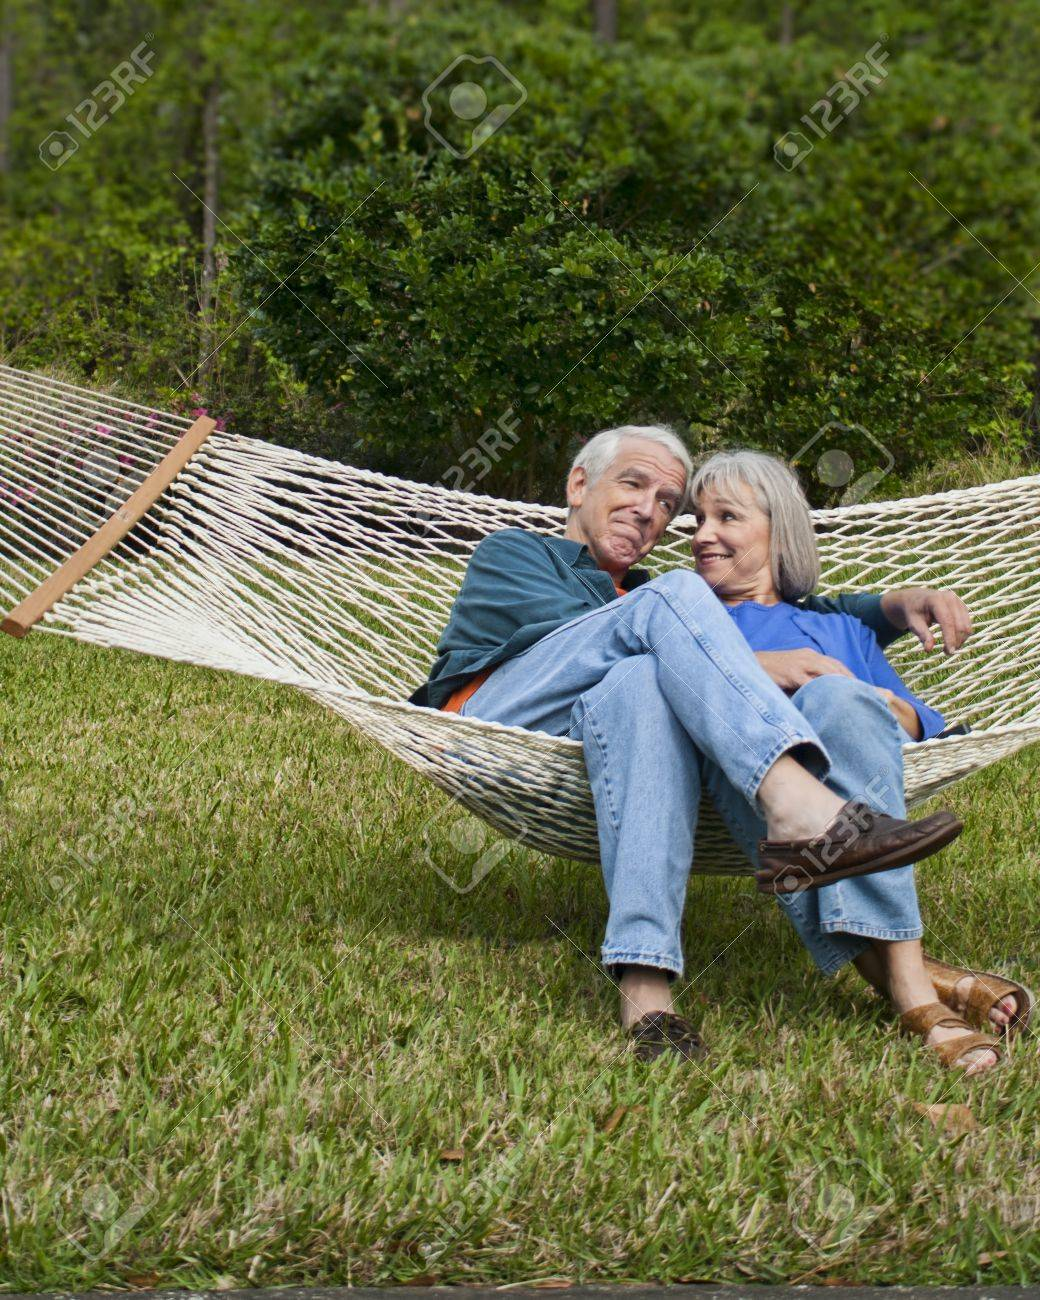 expressive senior couple in hammock age 550-60 Stock Photo - 15059662